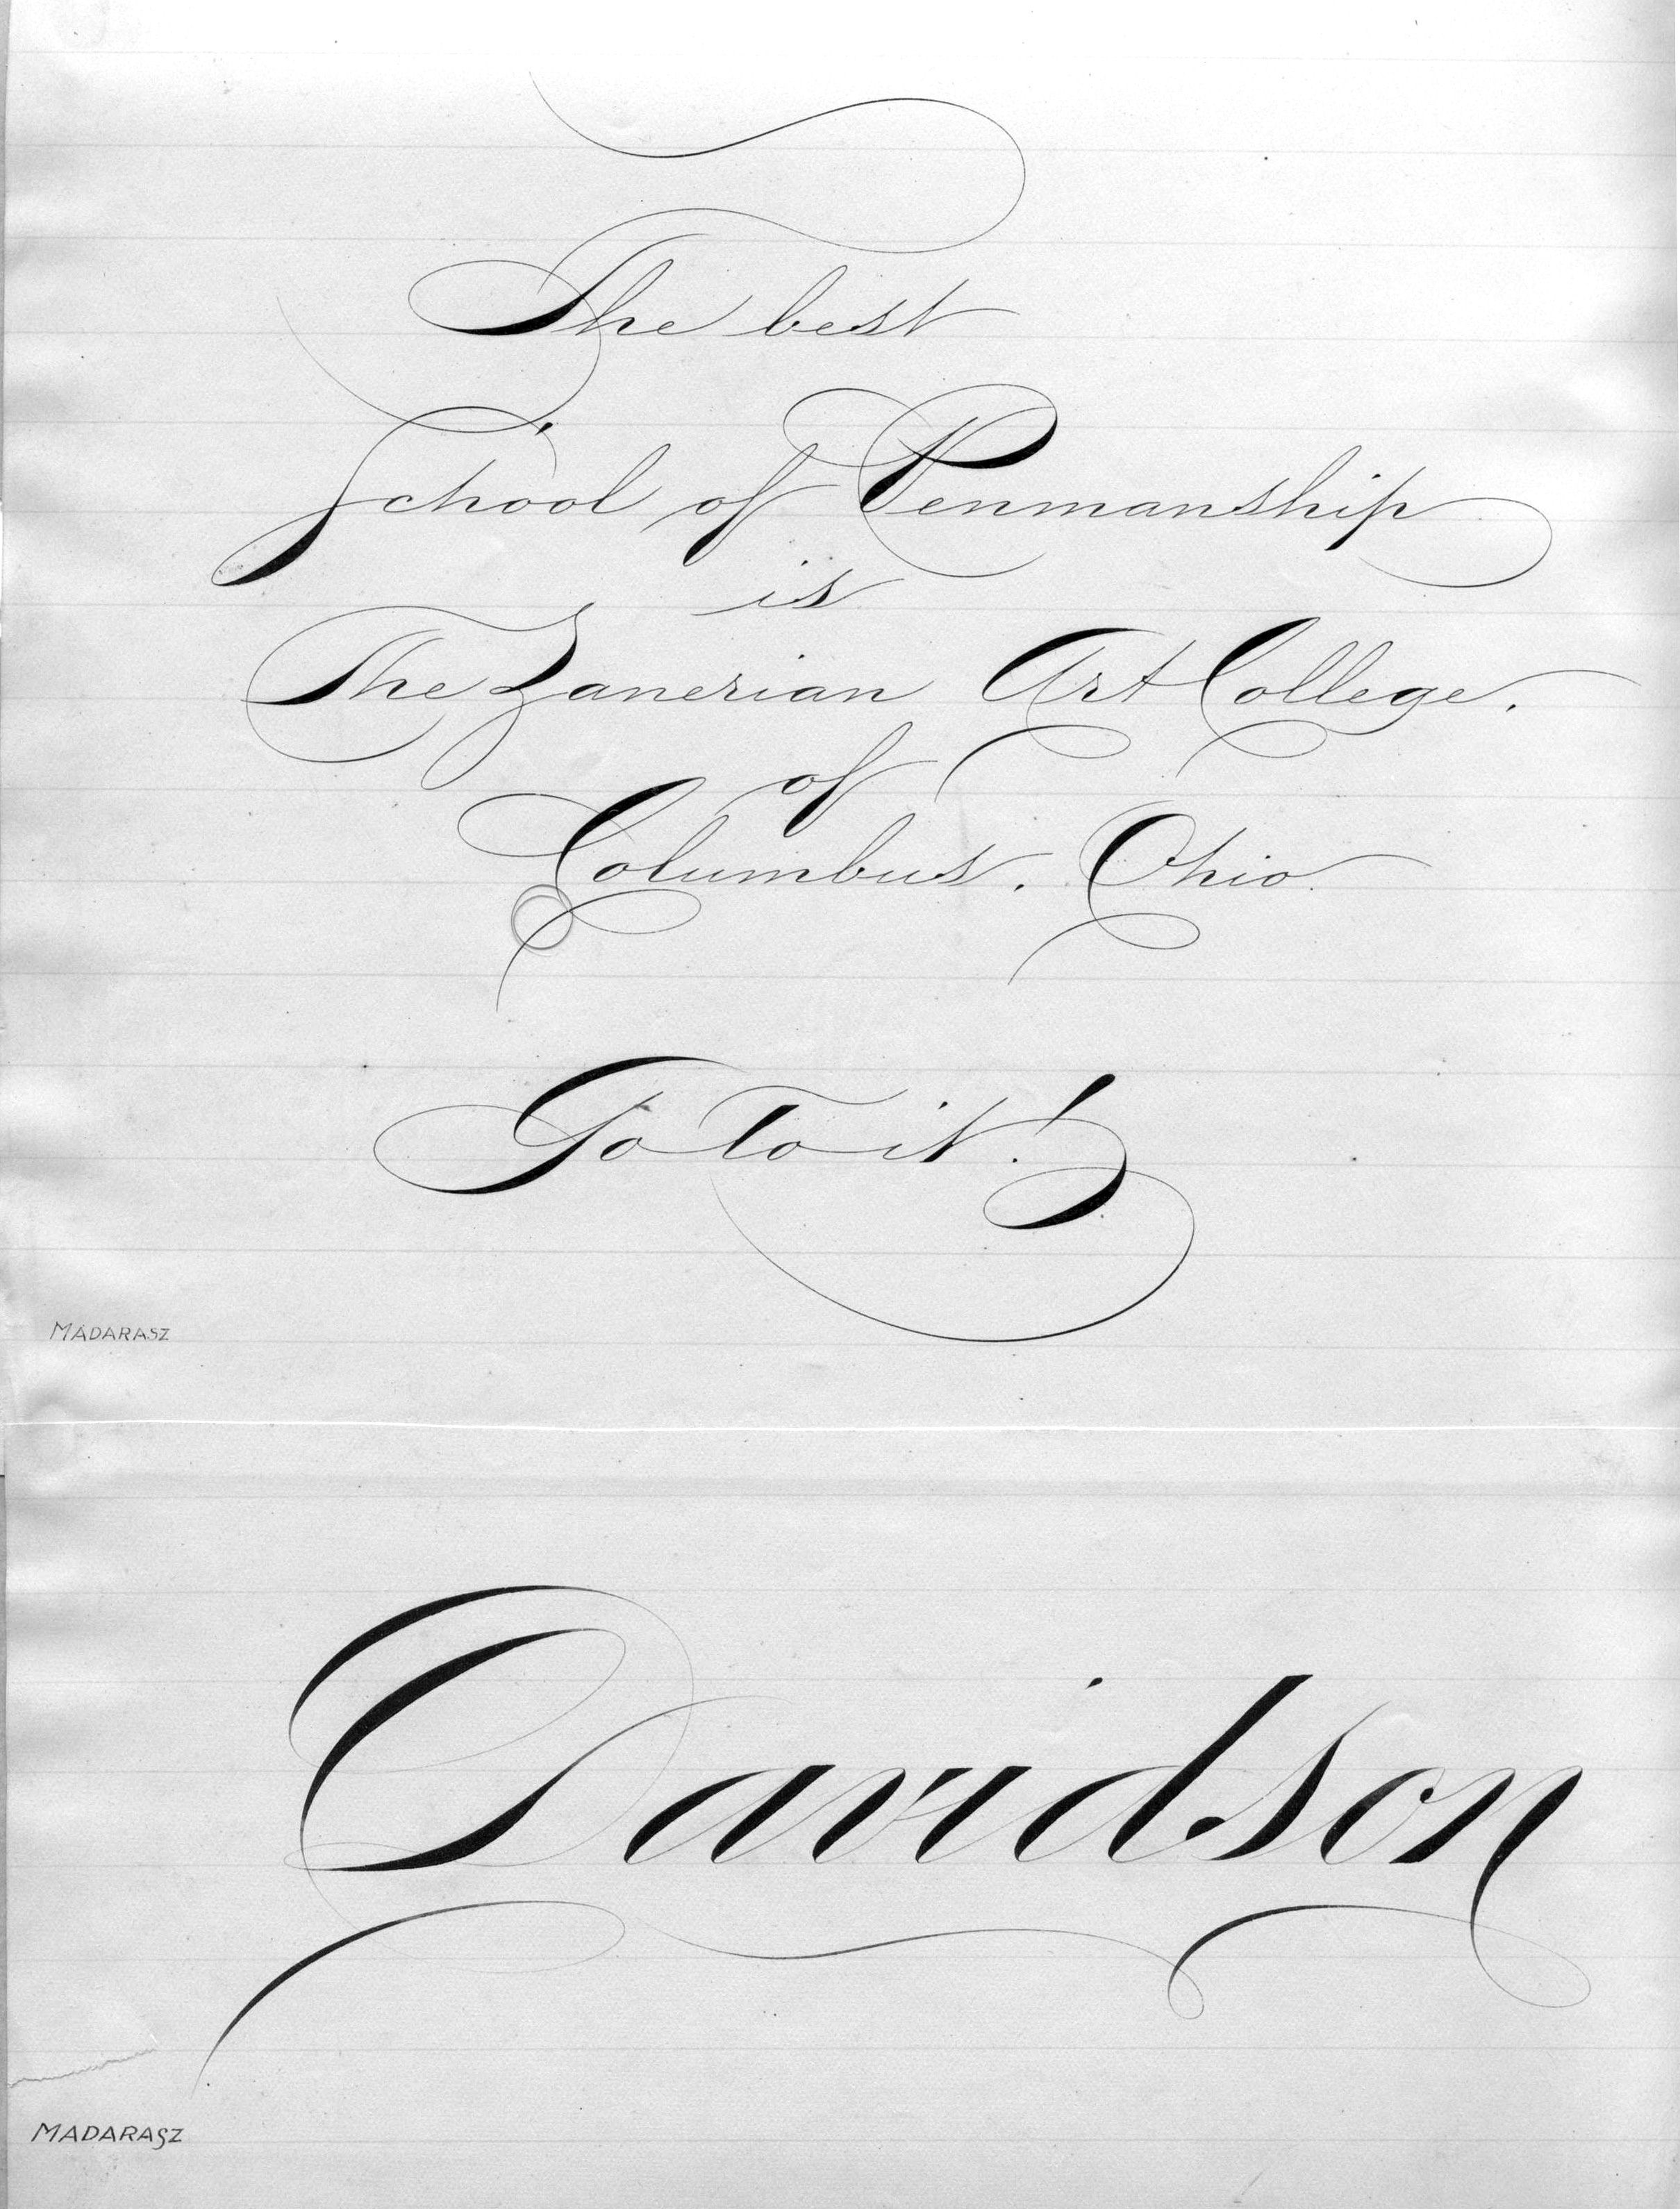 Calligraphy Tattoo Pinterest Louis Madarasz Penmanship Wow One Of The Best Ones I Have